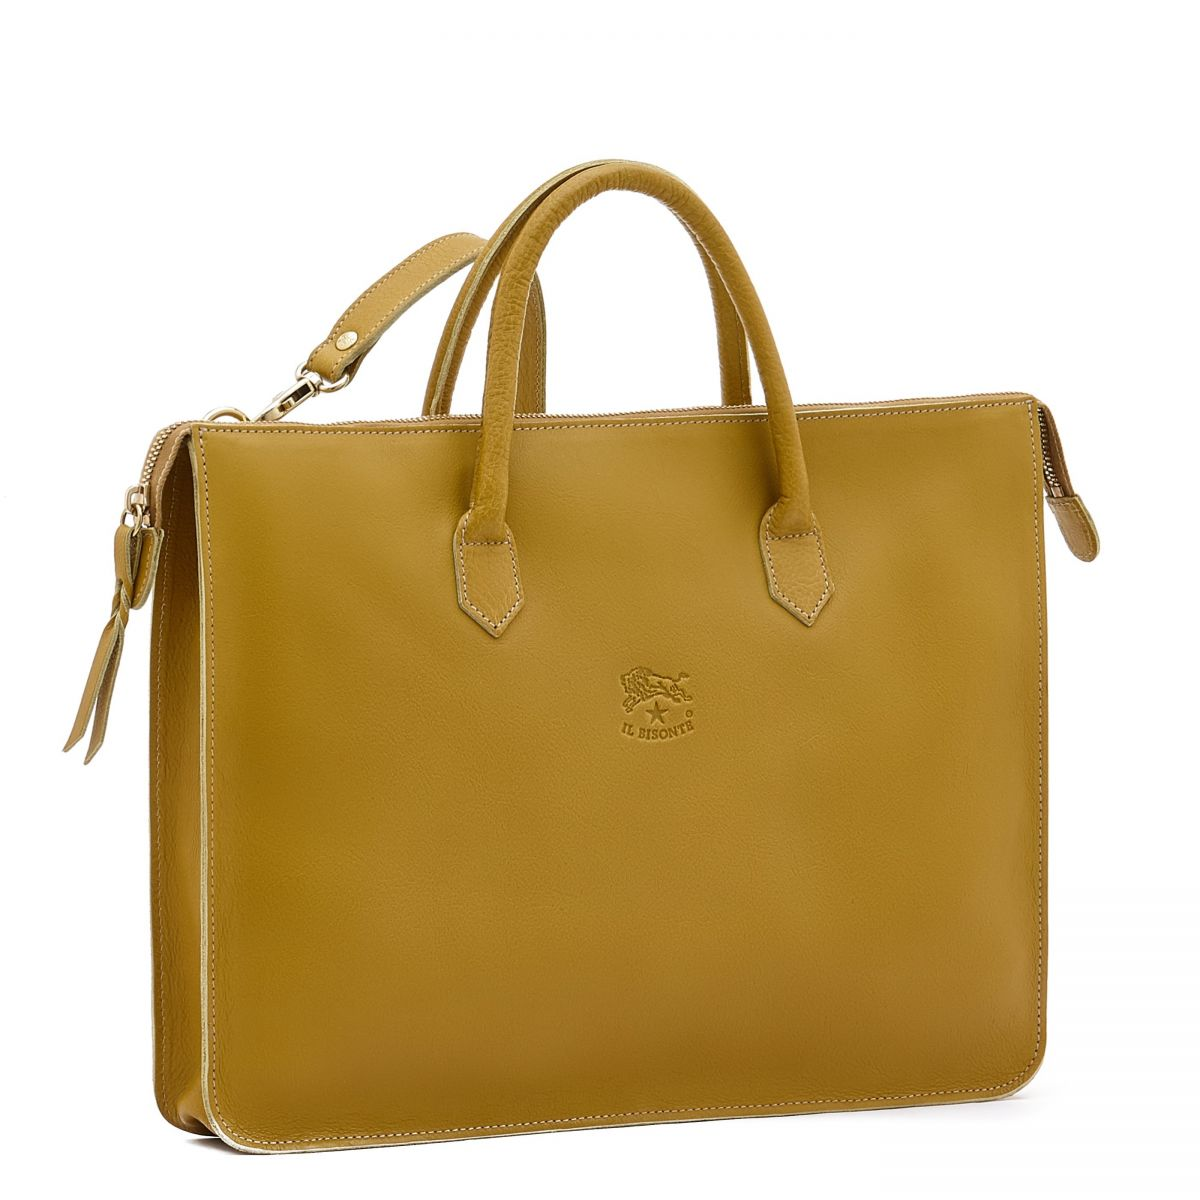 Briefcase Michelangelo in Cowhide Leather BBC035 color Curry | Details